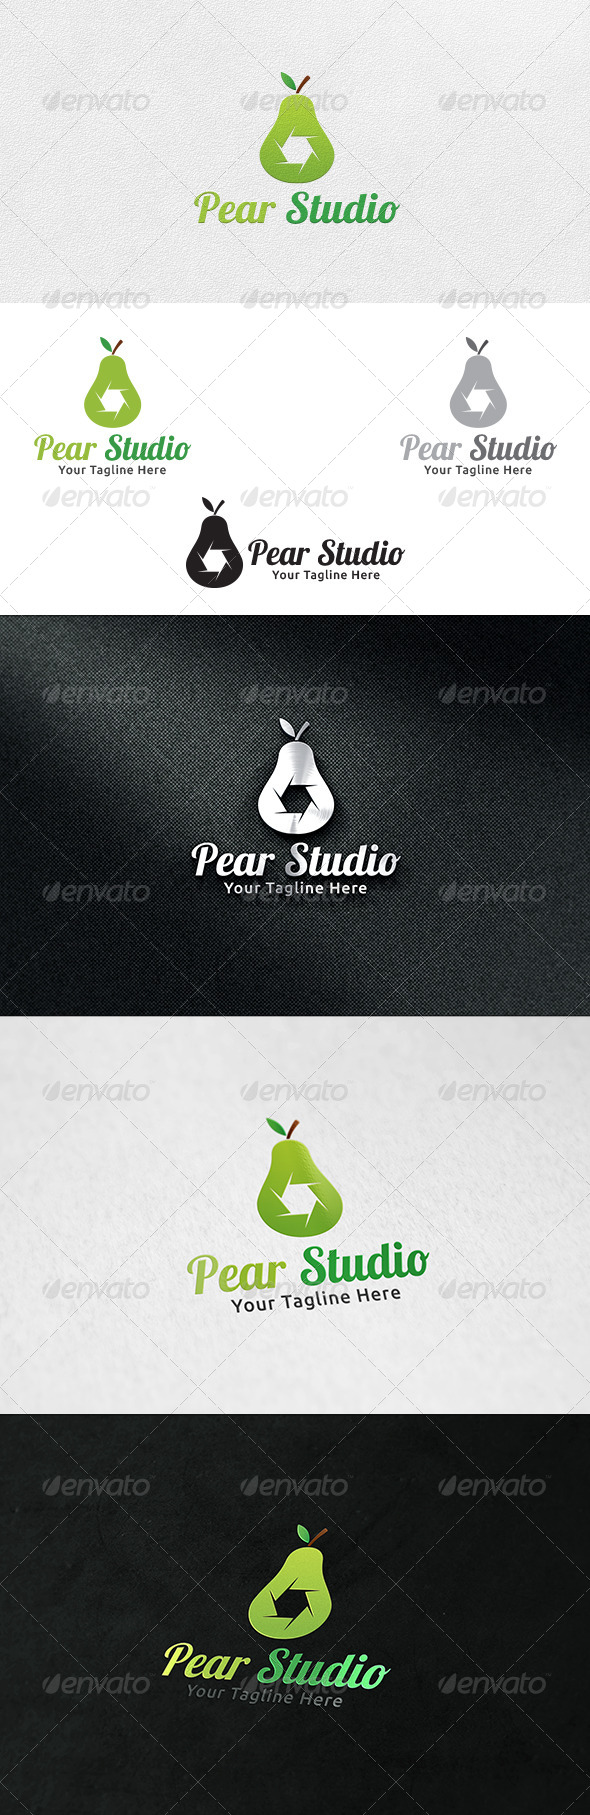 Pear Studio - Logo Template - Nature Logo Templates